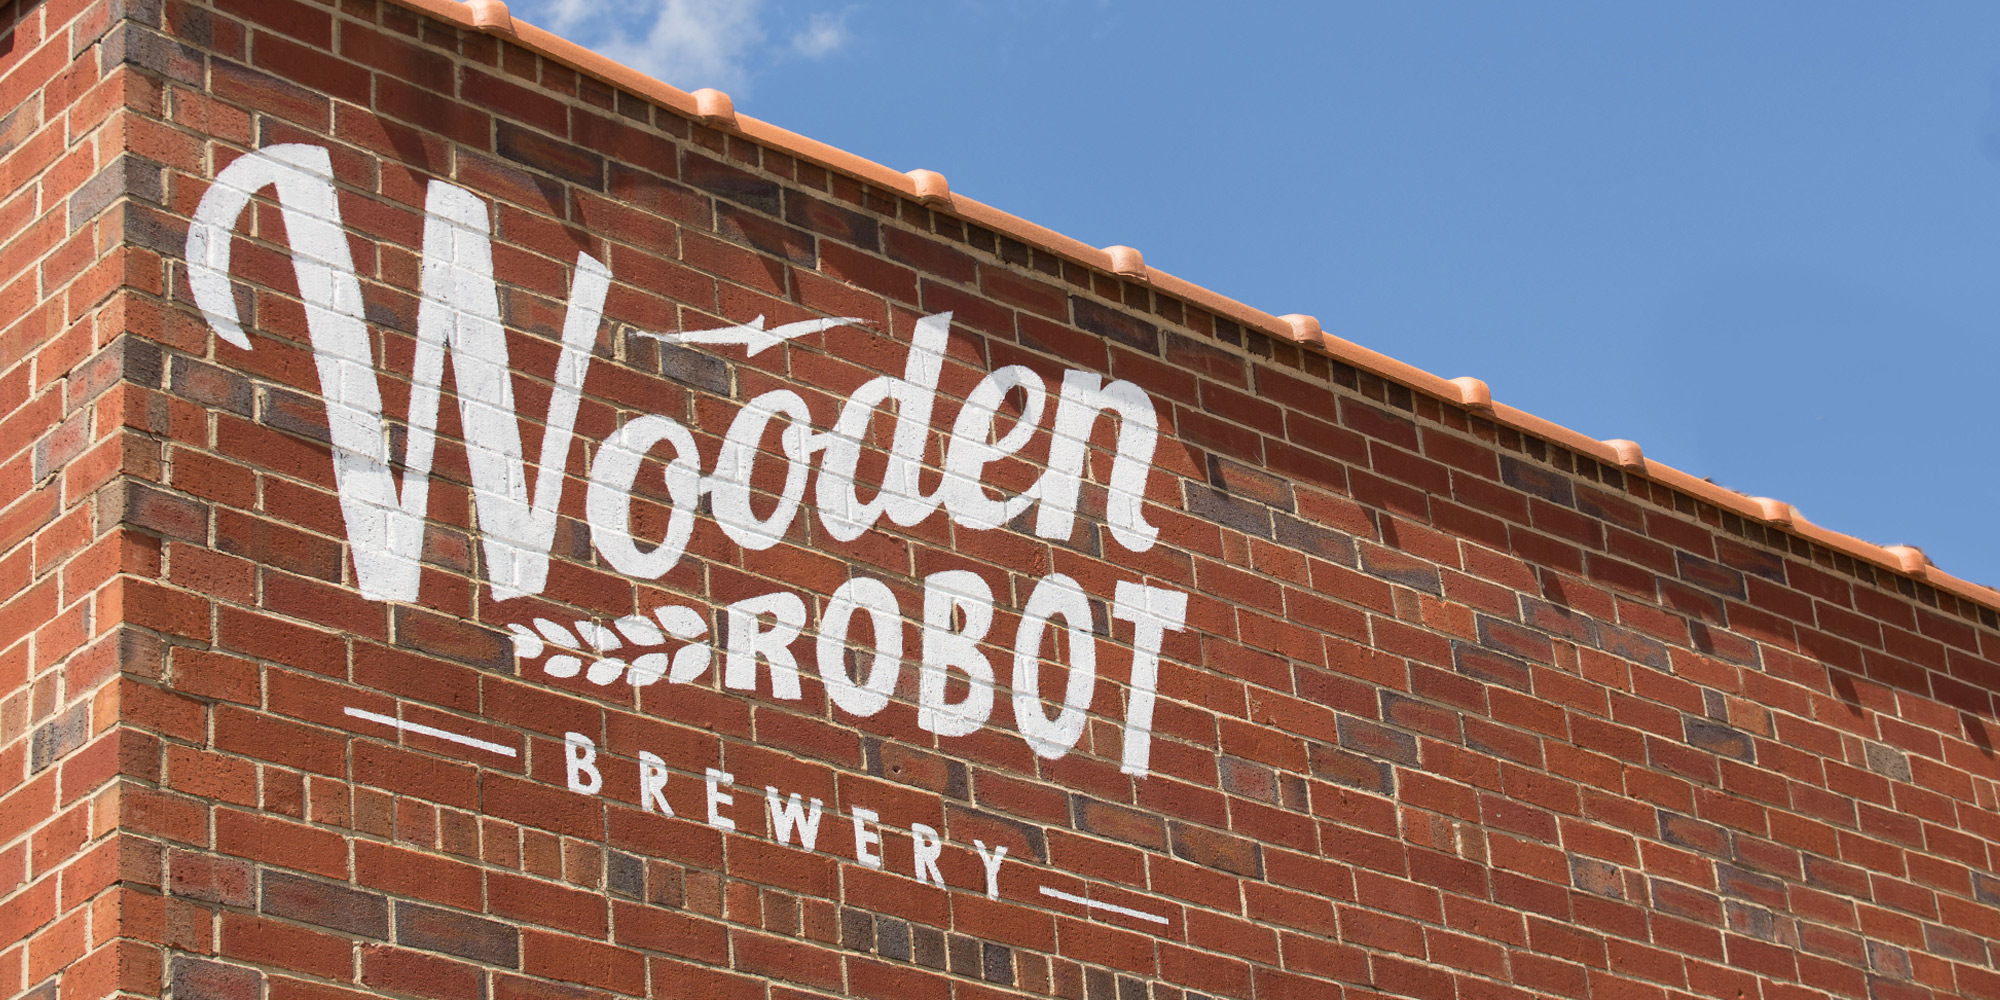 Wooden Robot Exterior Signage